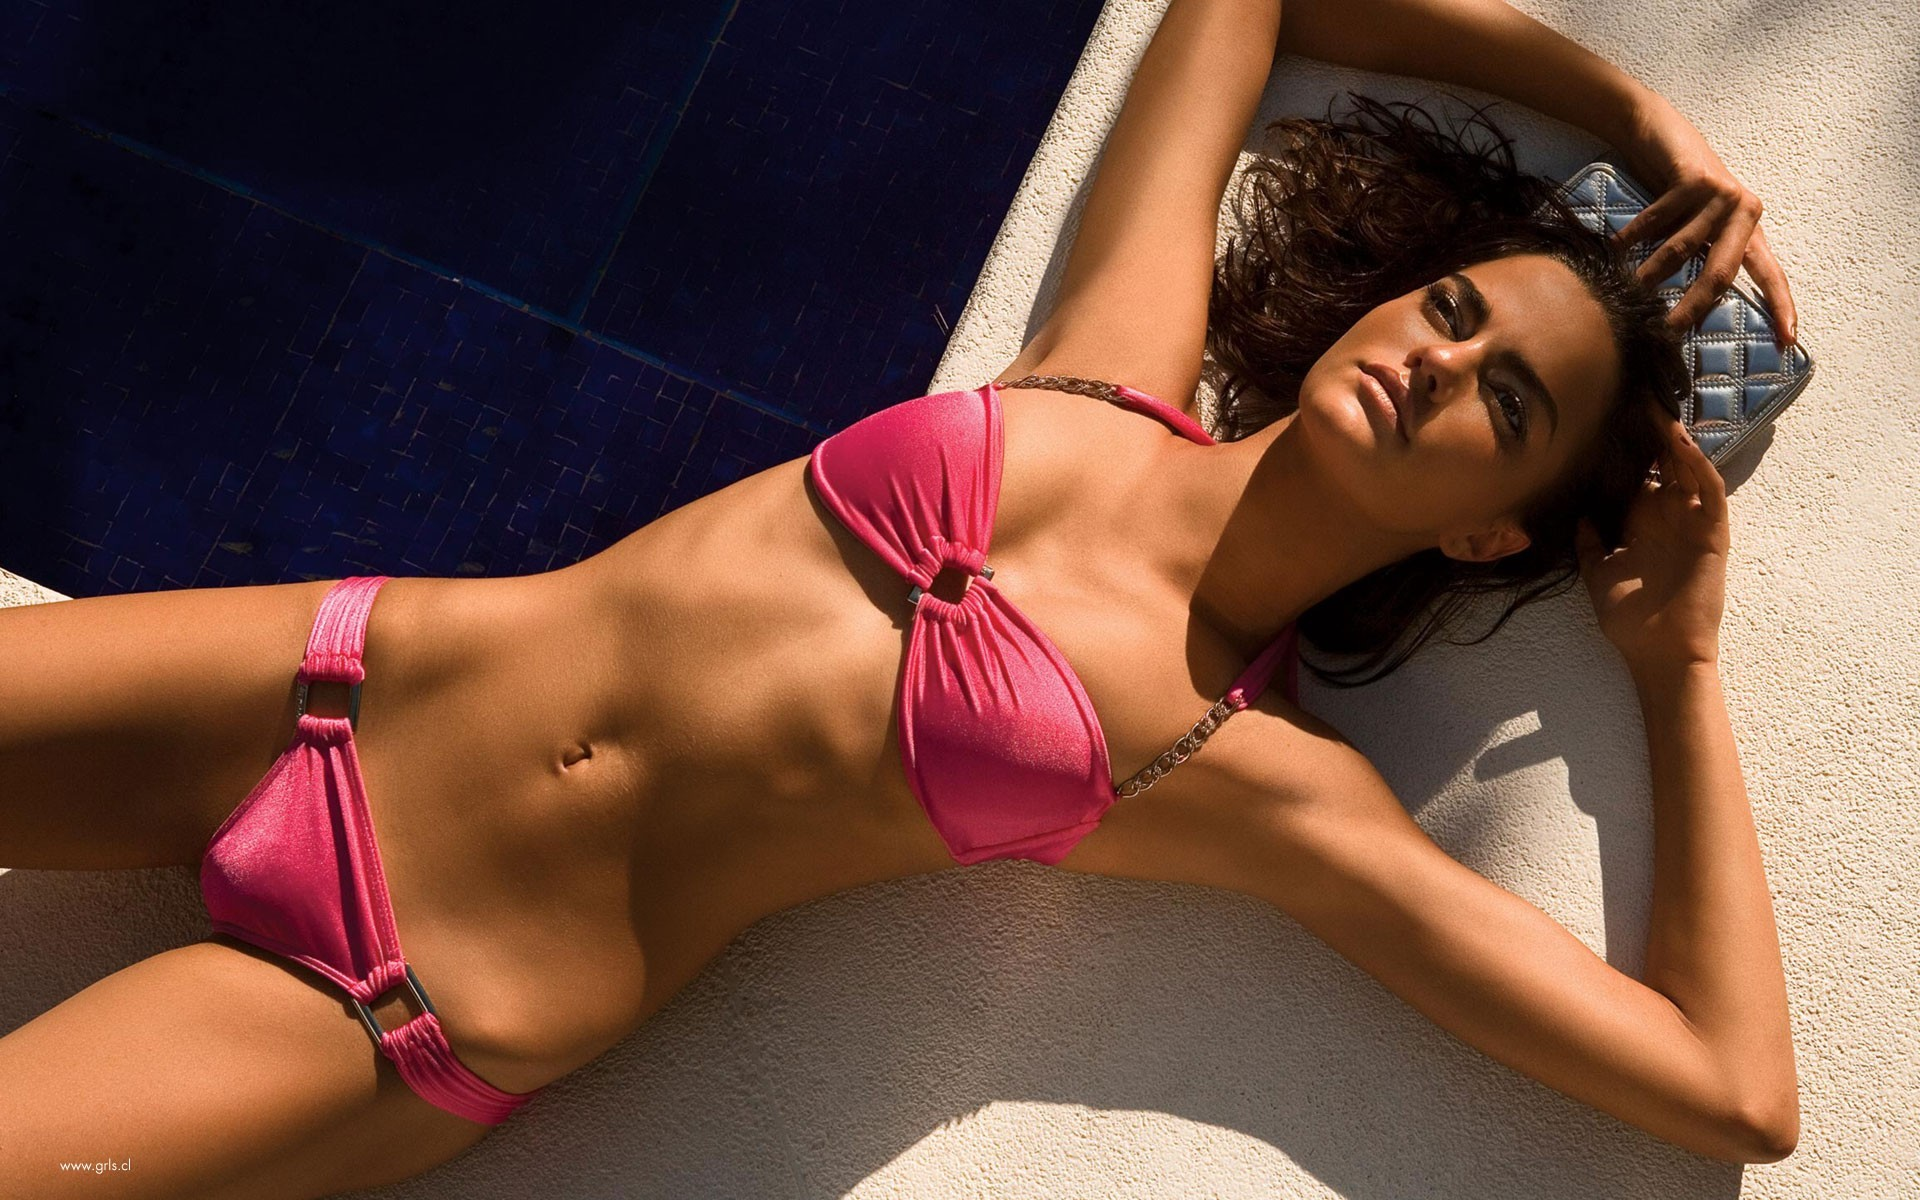 brunettes woman bikini models HD Wallpaper